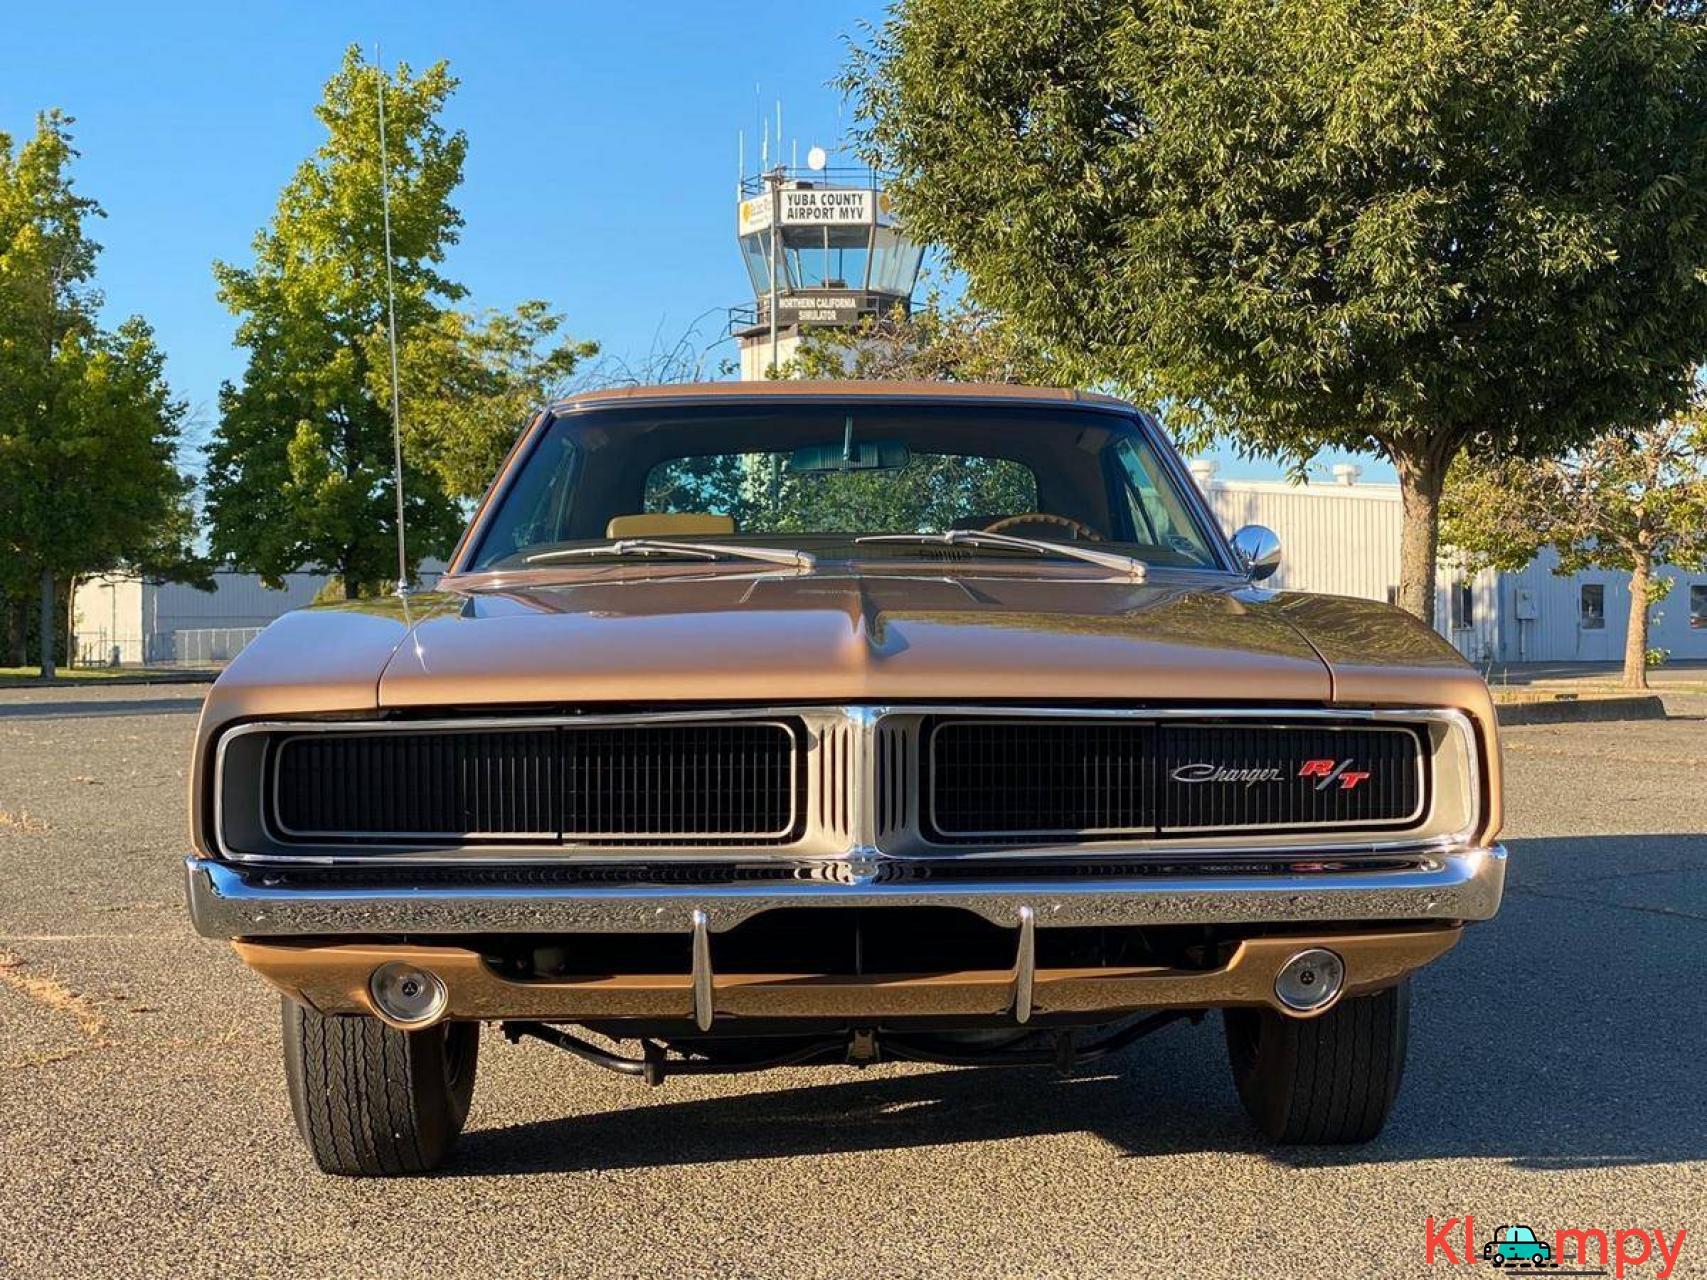 1969 Dodge Charger RT SE 440 375hp High Performance - 10/20